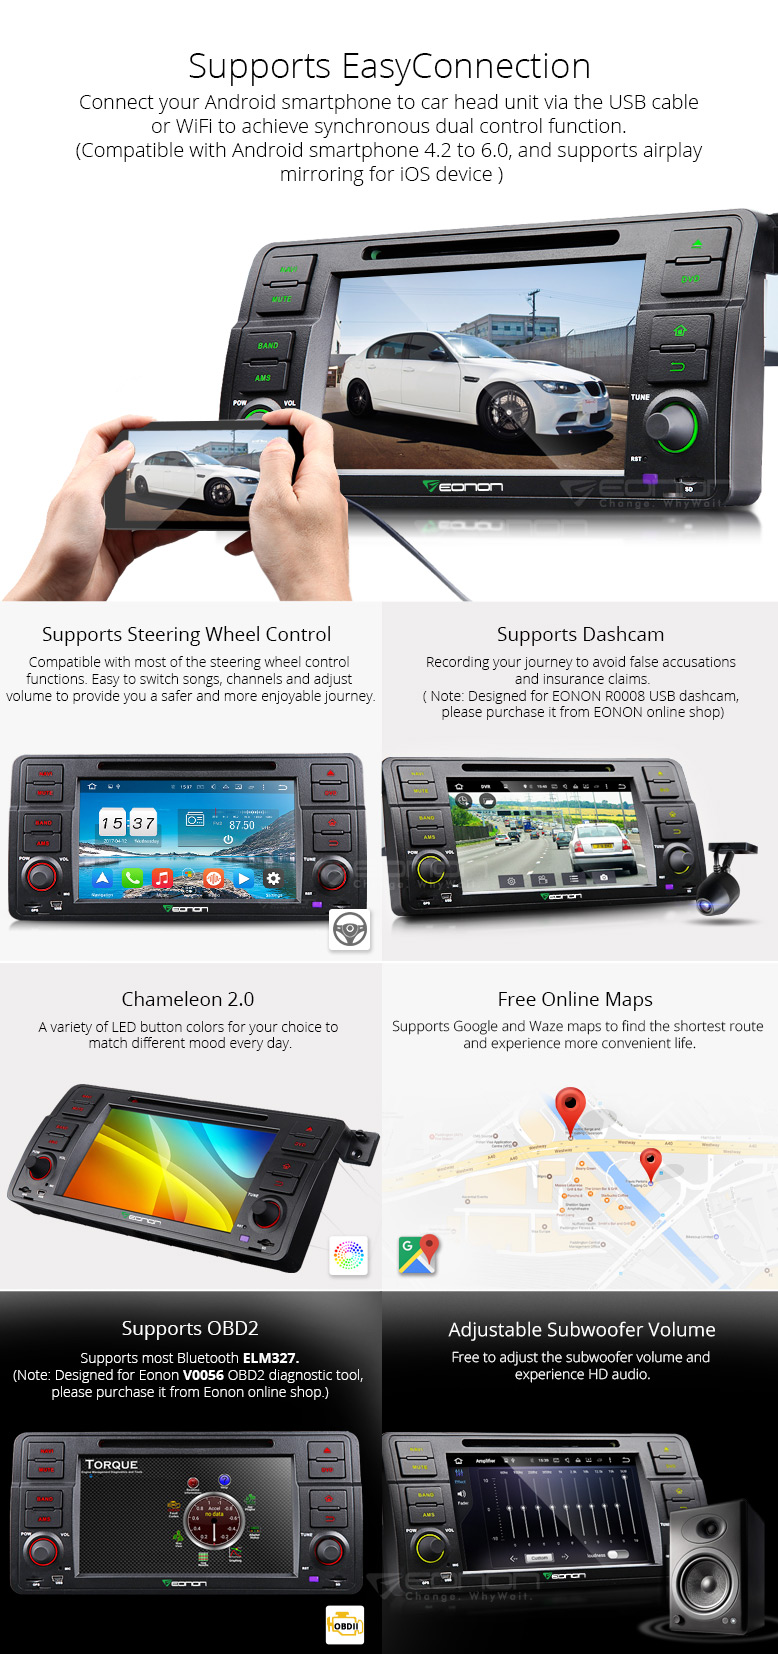 7″ Octa-Core 2GB RAM 32GB ROM Android 6.0 OS Car DVD for BMW 3 Series E46 1998-2006 with Android/Wince Dual UI Switchable